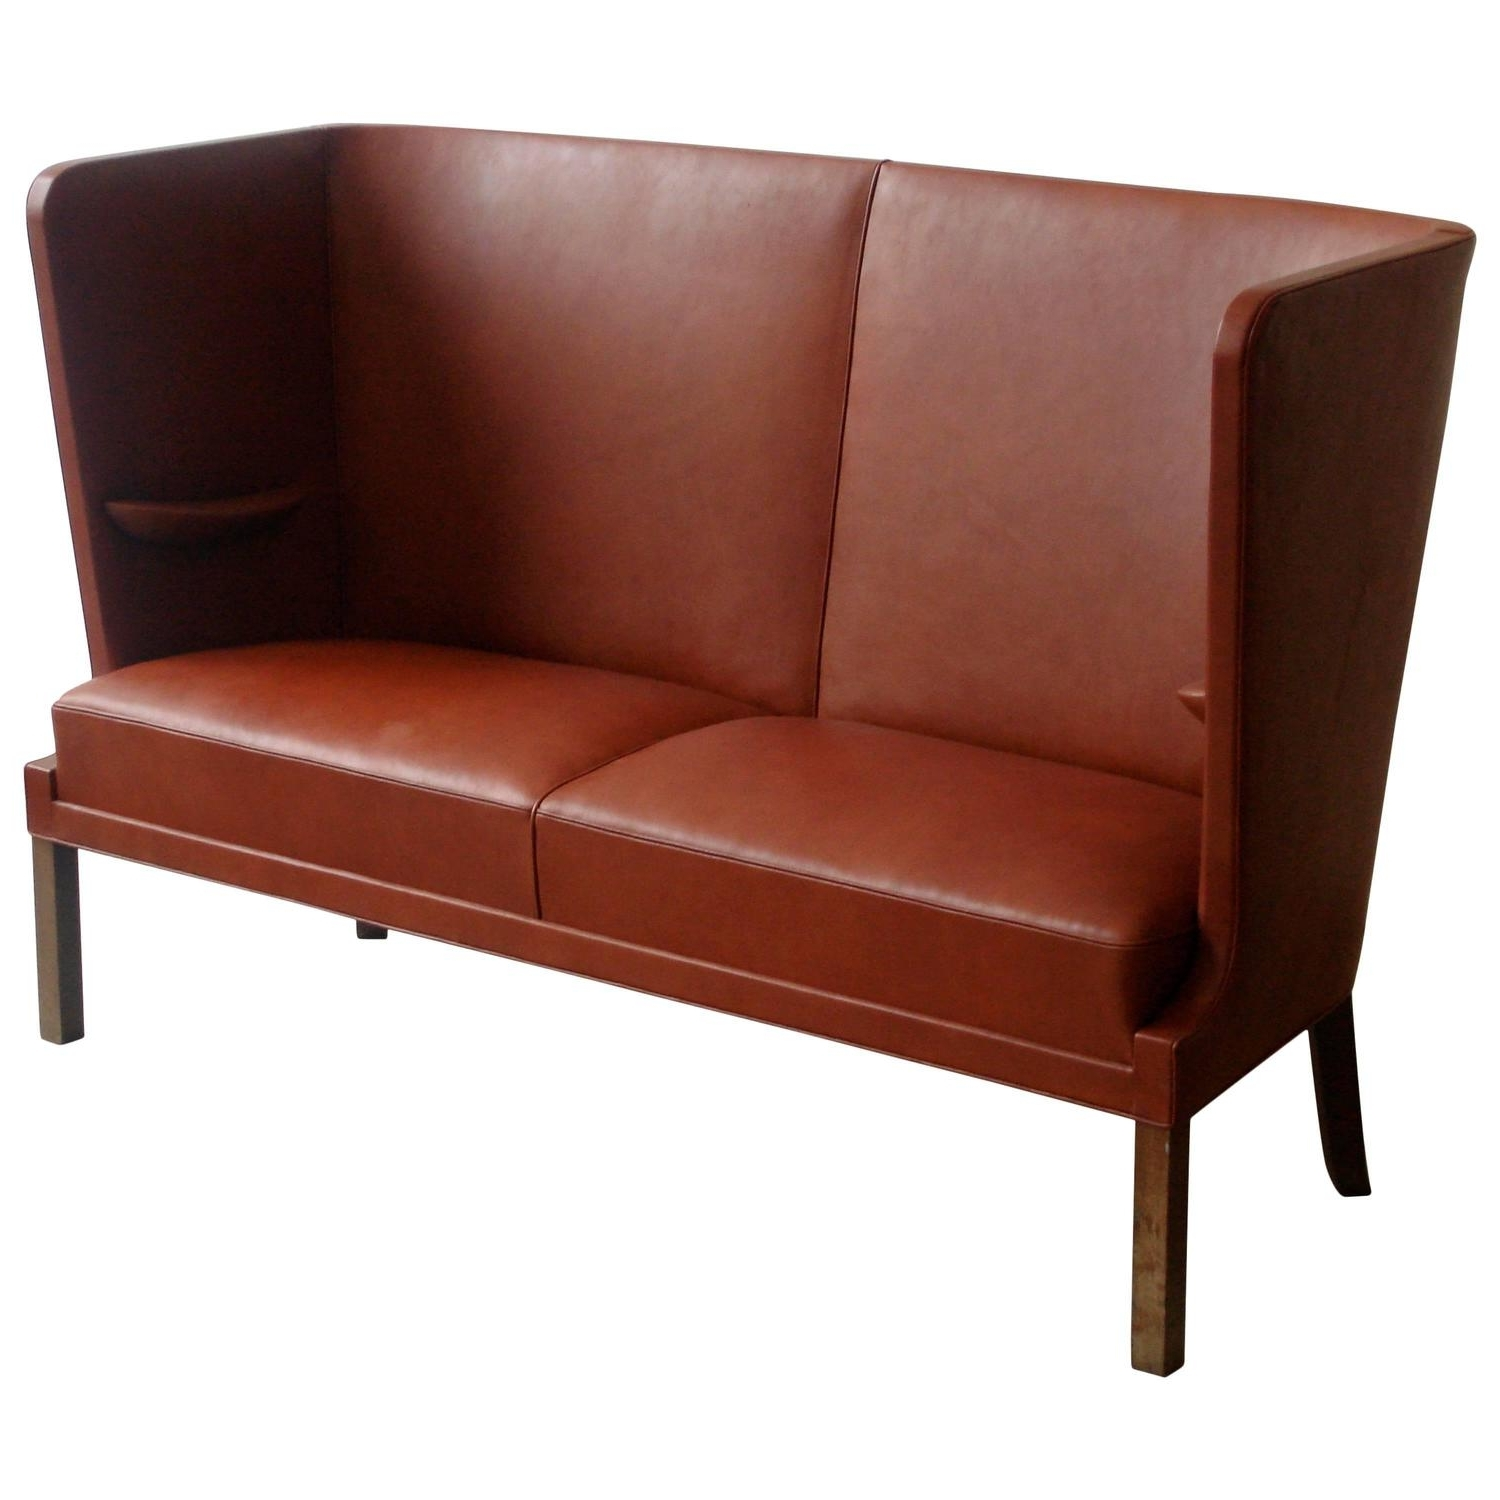 2019 1930s Sofas – 122 For Sale At 1stdibs Regarding Sofas With High Backs (View 17 of 20)